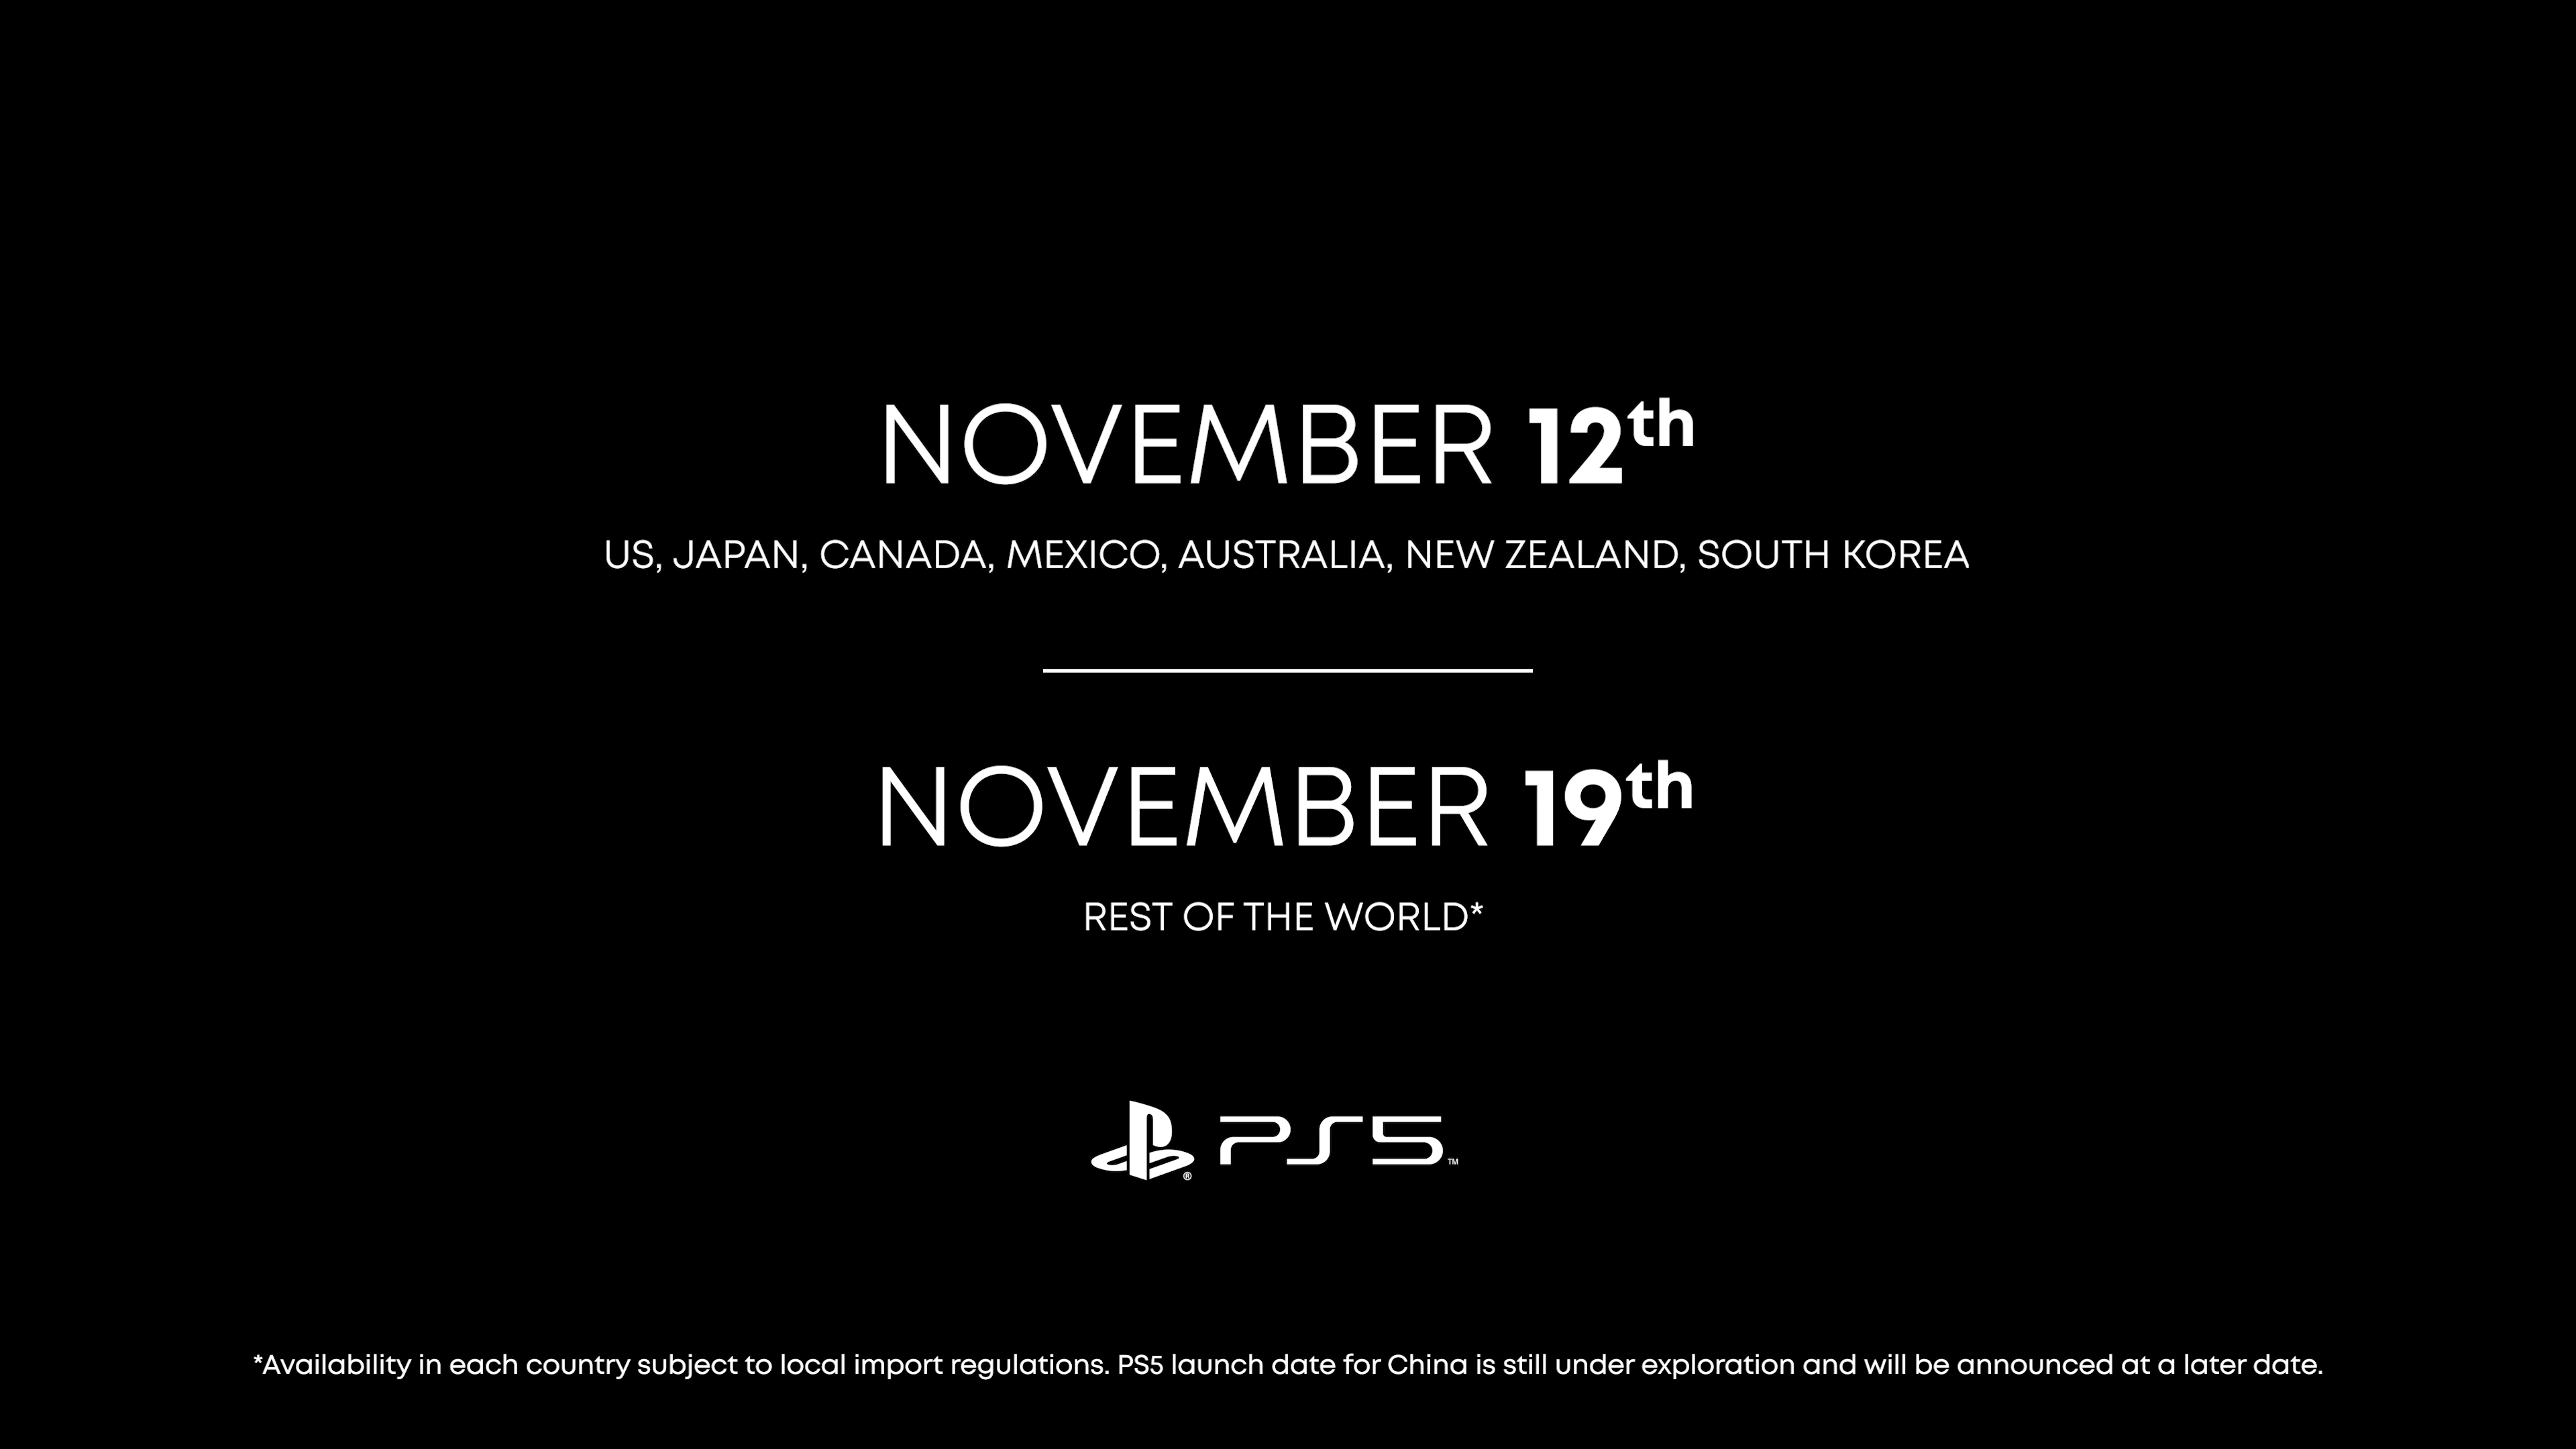 PlayStation 5 release dates November 12 for US, Japan, Canada, Mexico, Australia, New Zealand, South Korea  November 19 for Rest of the World*  Availability in each country subject to local import regulations. PS5 launch date for China is still under exploration and will be announced at a later date.